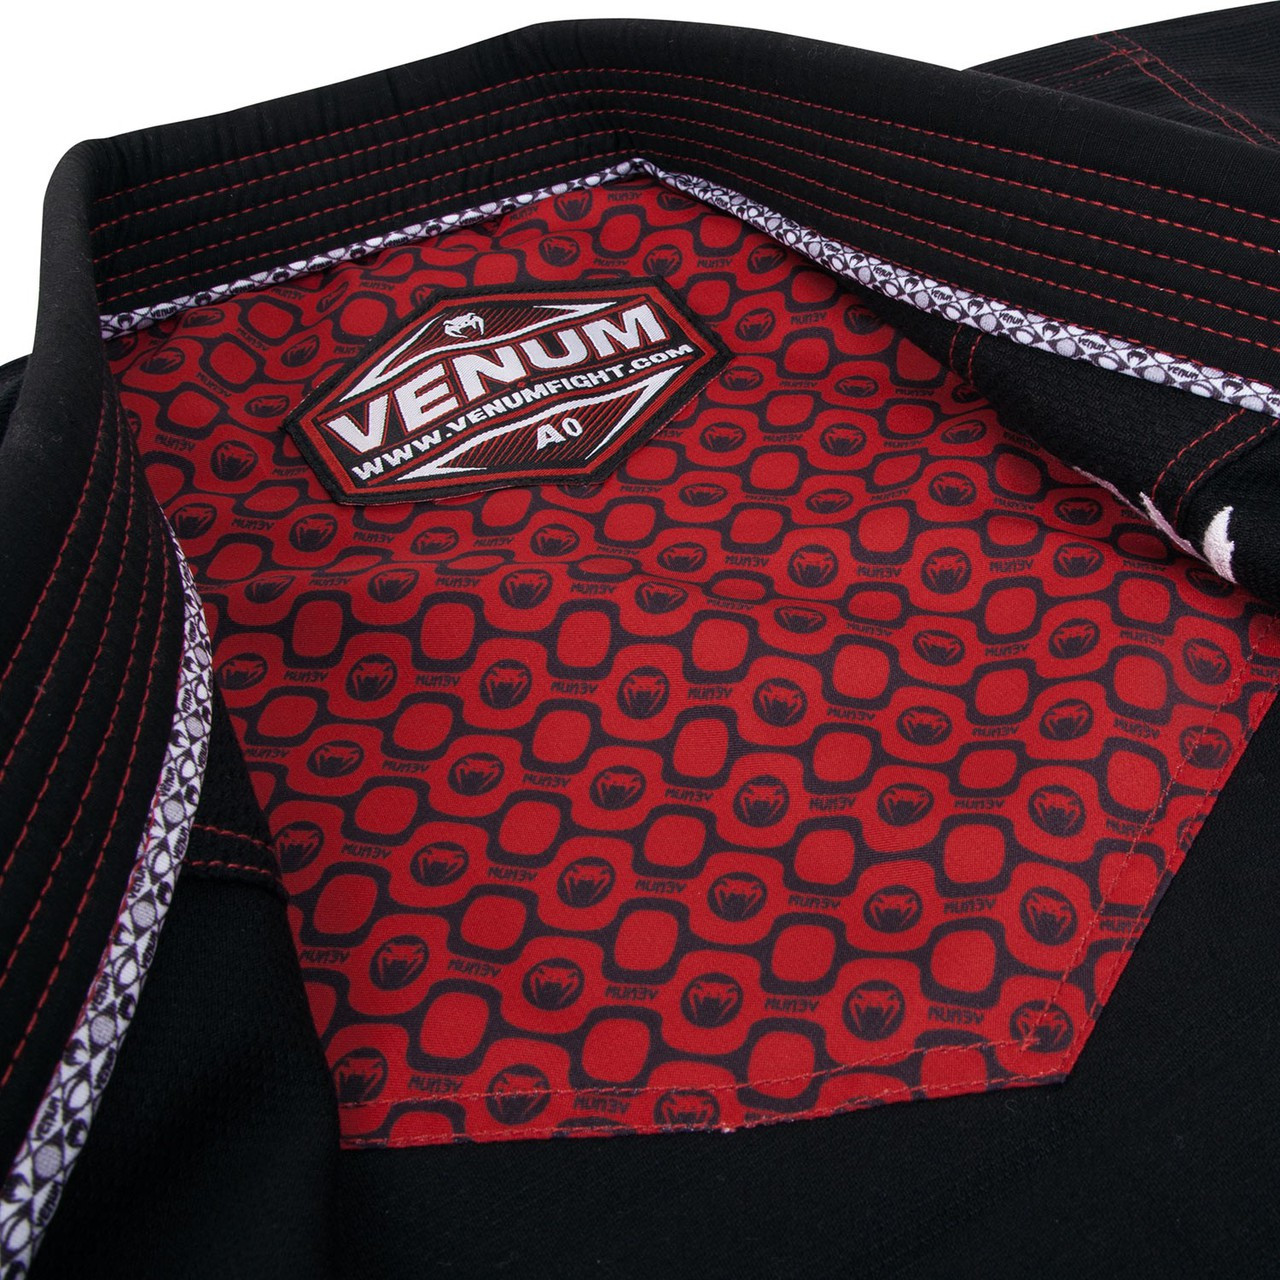 Gi jacket top Venum Elite Light BJJ GI in Black is now available at www.thejiujitsushop.com  Enjoy Free Shipping from The Jiu Jitsu Shop today!